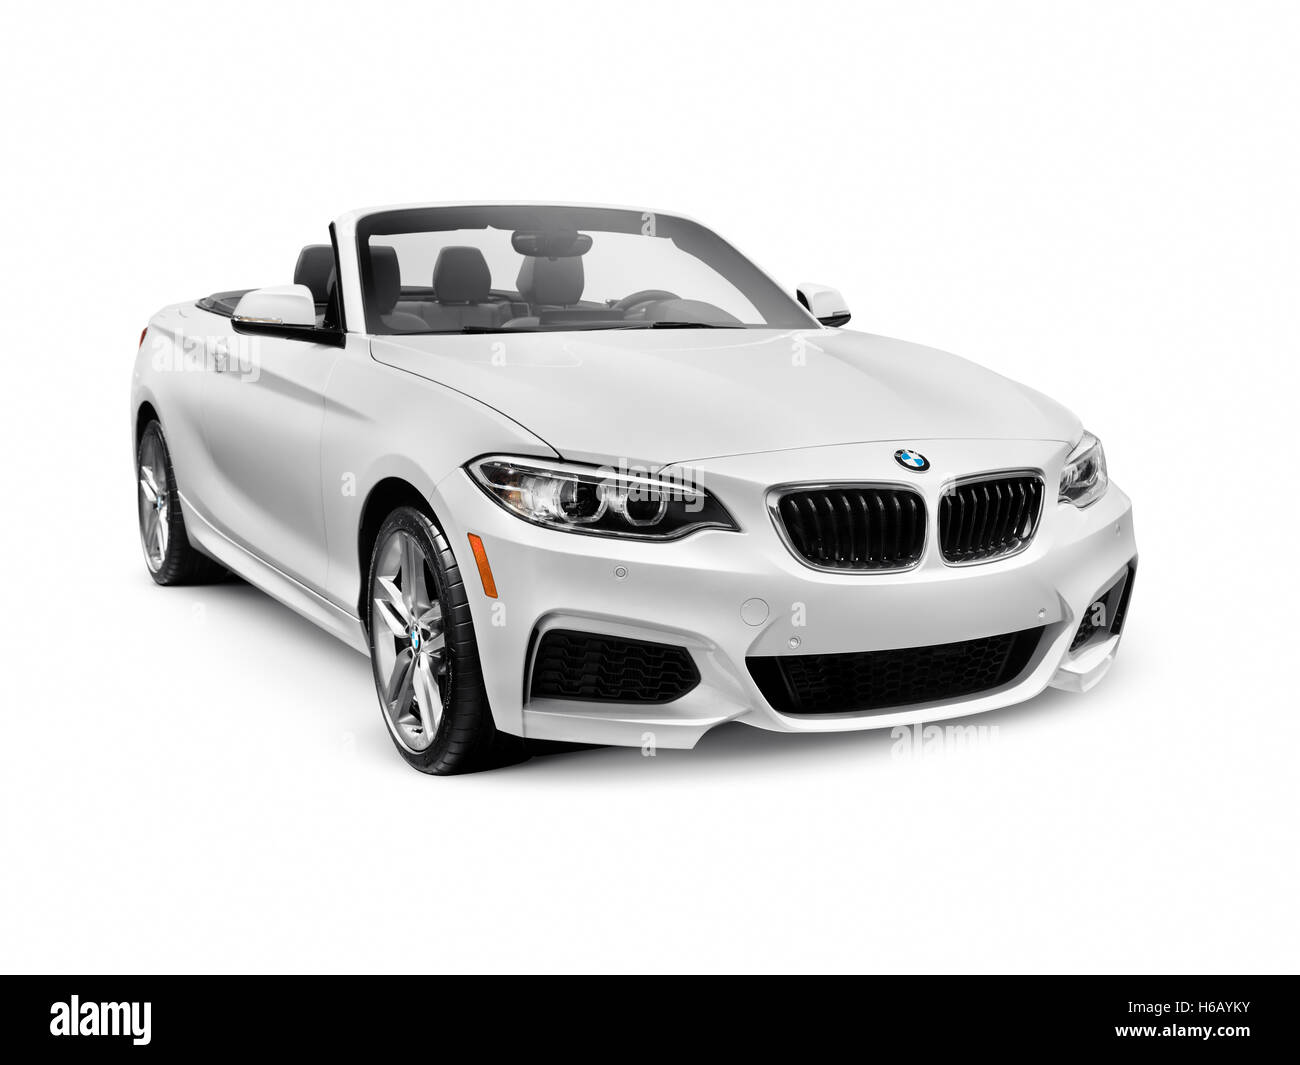 White 2016 BMW 2 Series Cabriolet Luxury Car isolated on white background with clipping path - Stock Image